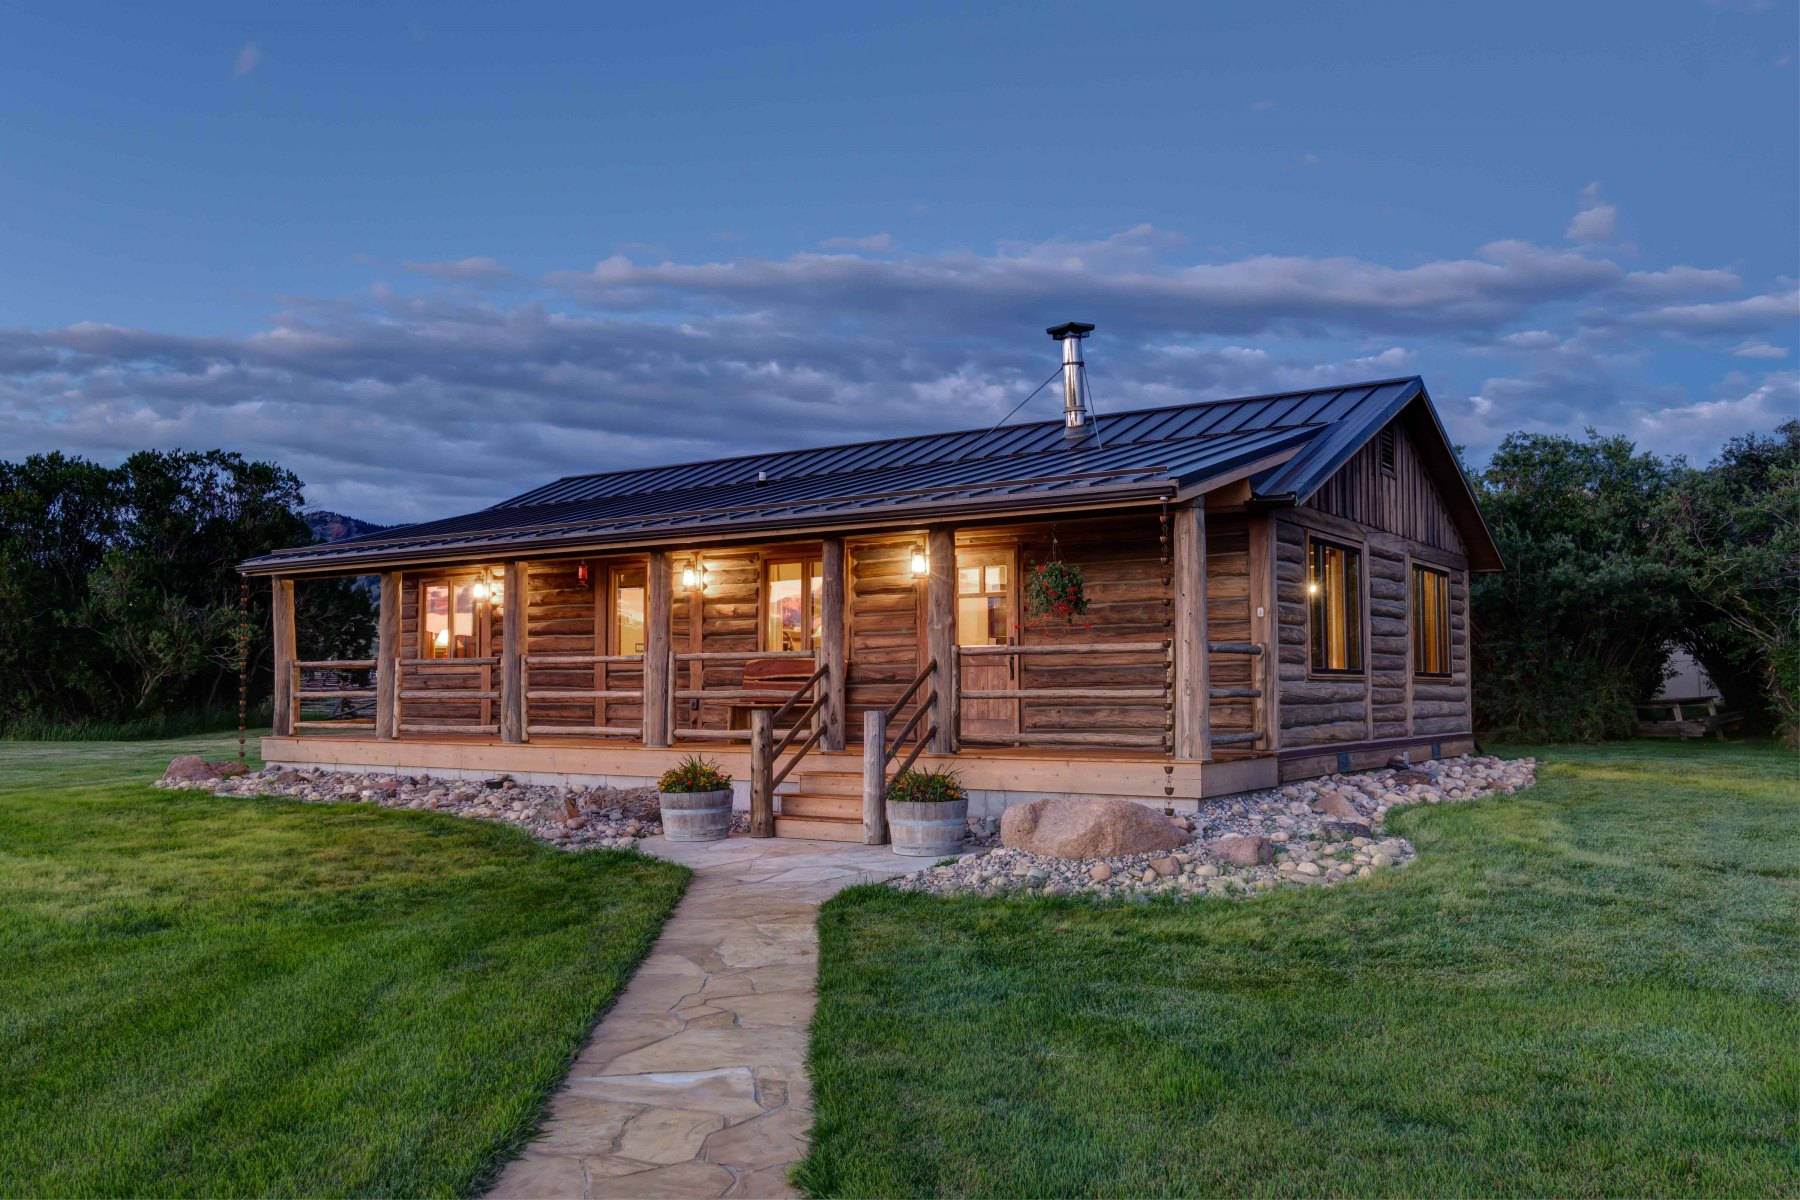 BuckExt log timber frame post & beam hybrid Centennial Wyoming custom home builder (12) - Deerwood Log Homes - Custom Built Homes and Cabins - Laramie, Wyoming and The Centennial Valley - deer-wood.com - (307) 742-6554